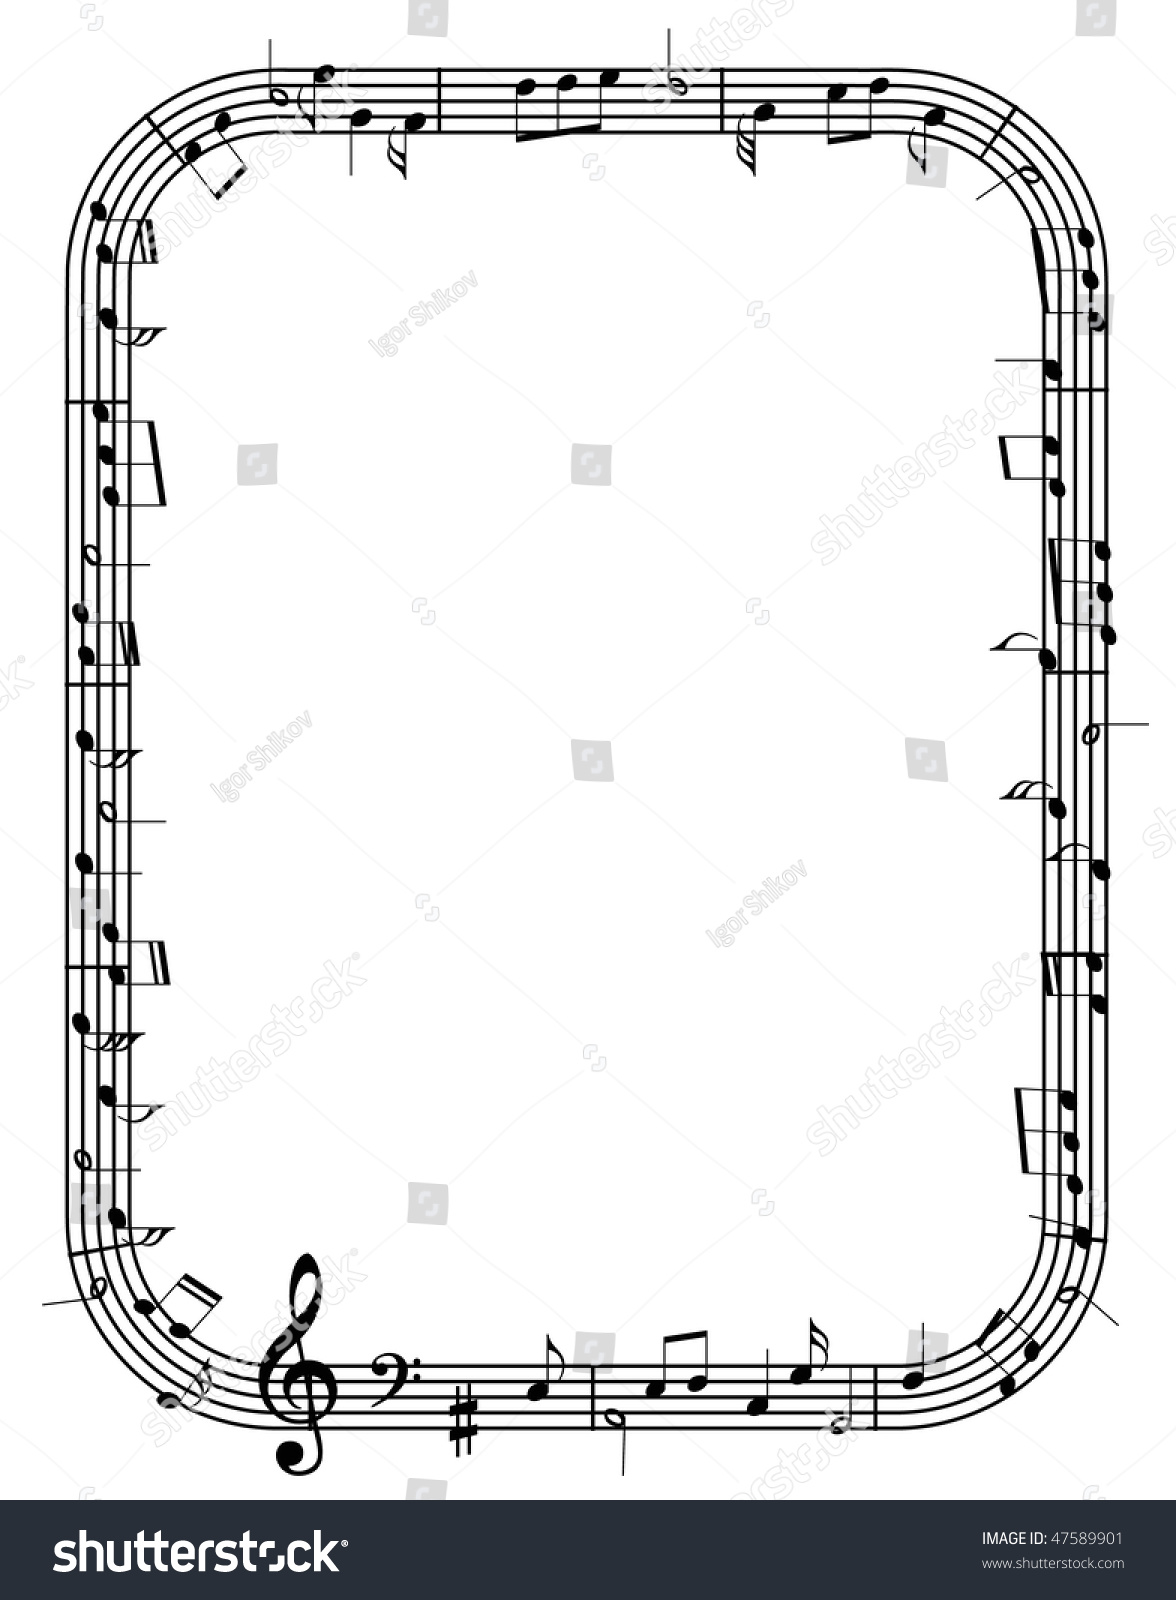 vector music notes frame - Music Picture Frame